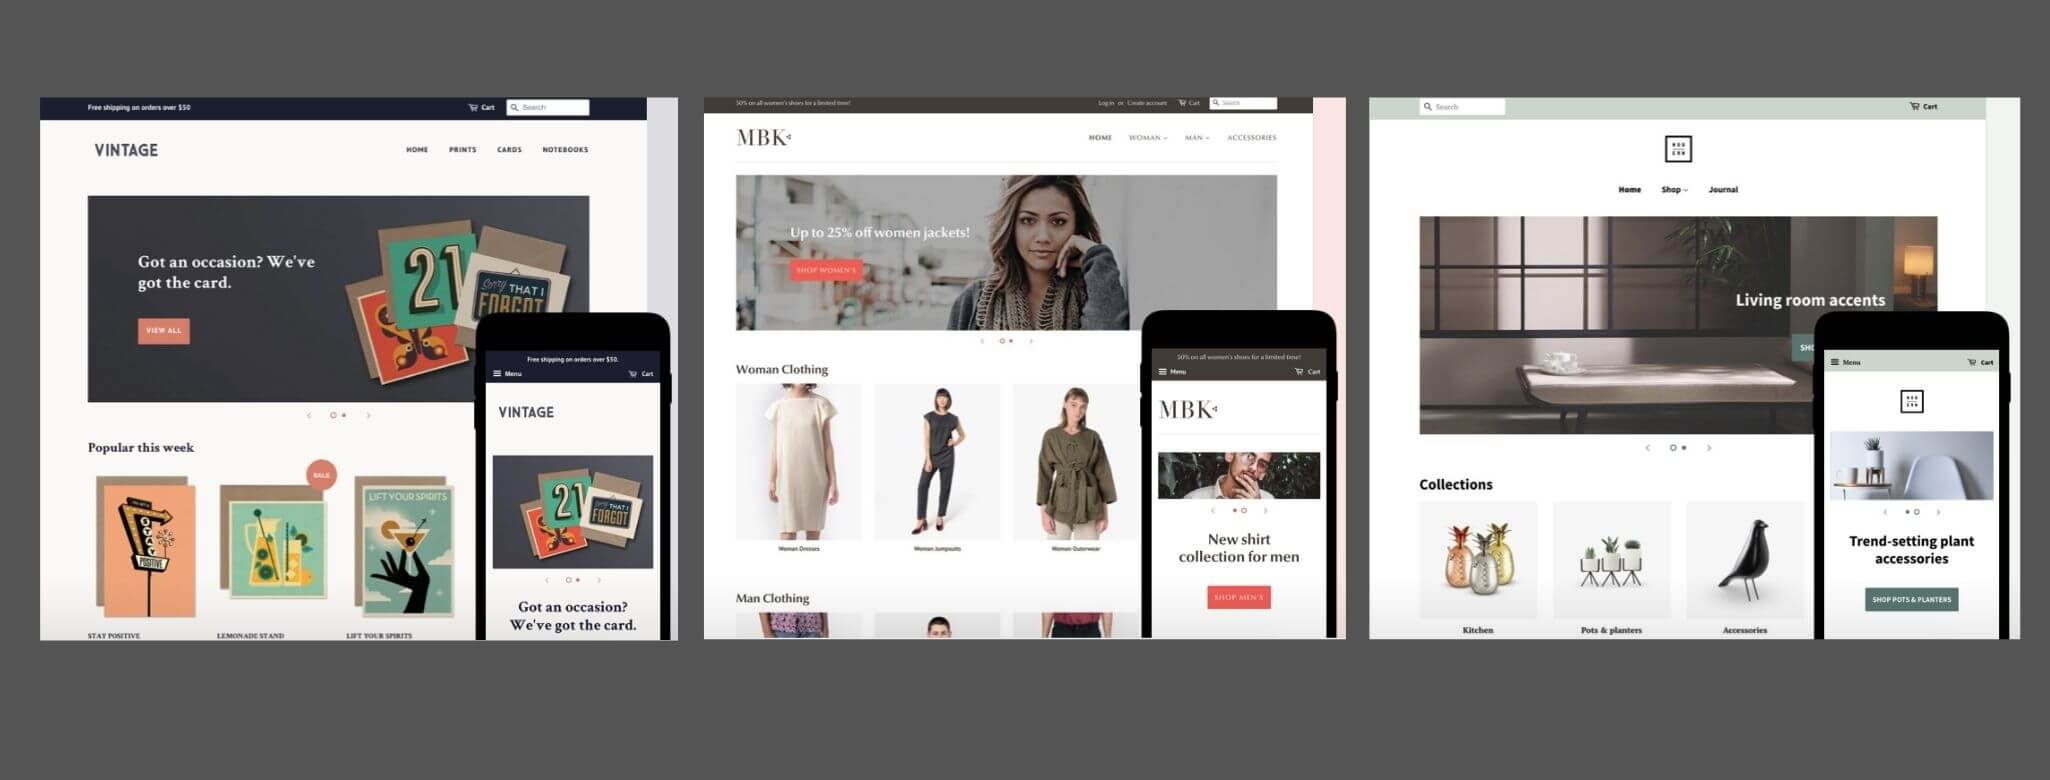 Minimal - The 4 Top-Rated Free Shopify Themes - Replyco Helpdesk Software for eCommerce